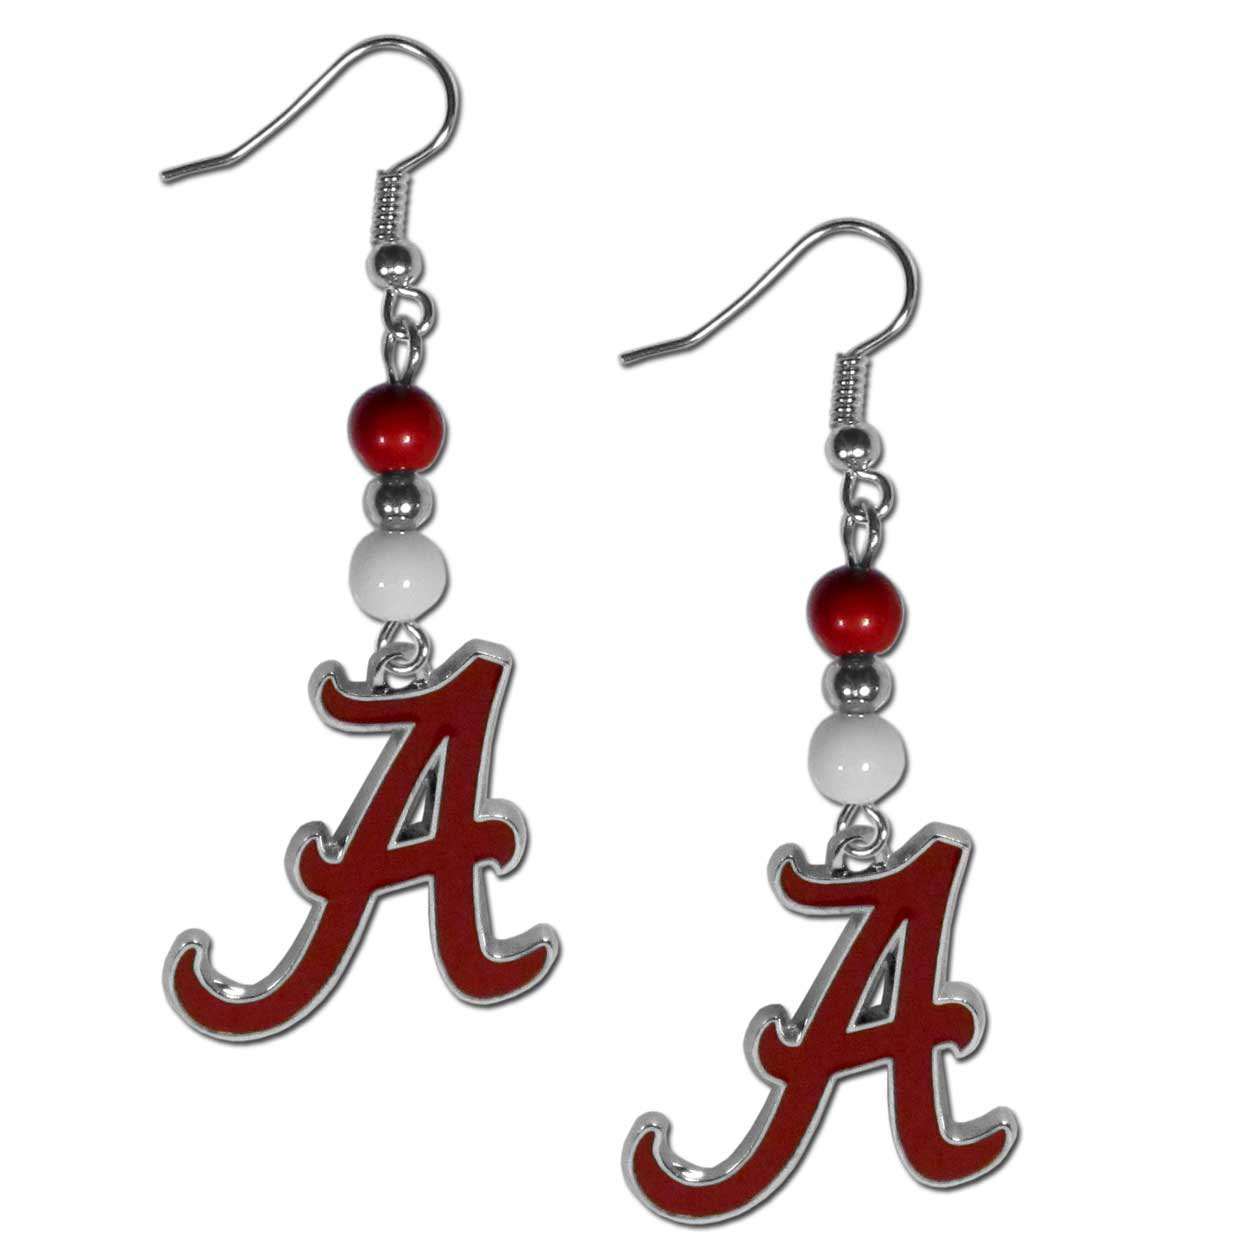 Alabama Crimson Tide Fan Bead Dangle Earrings - Love your team, show it off with our Alabama Crimson Tide bead dangle earrings! These super cute earrings hang approximately 2 inches and features 2 team colored beads and a high polish team charm. A must have for game day!